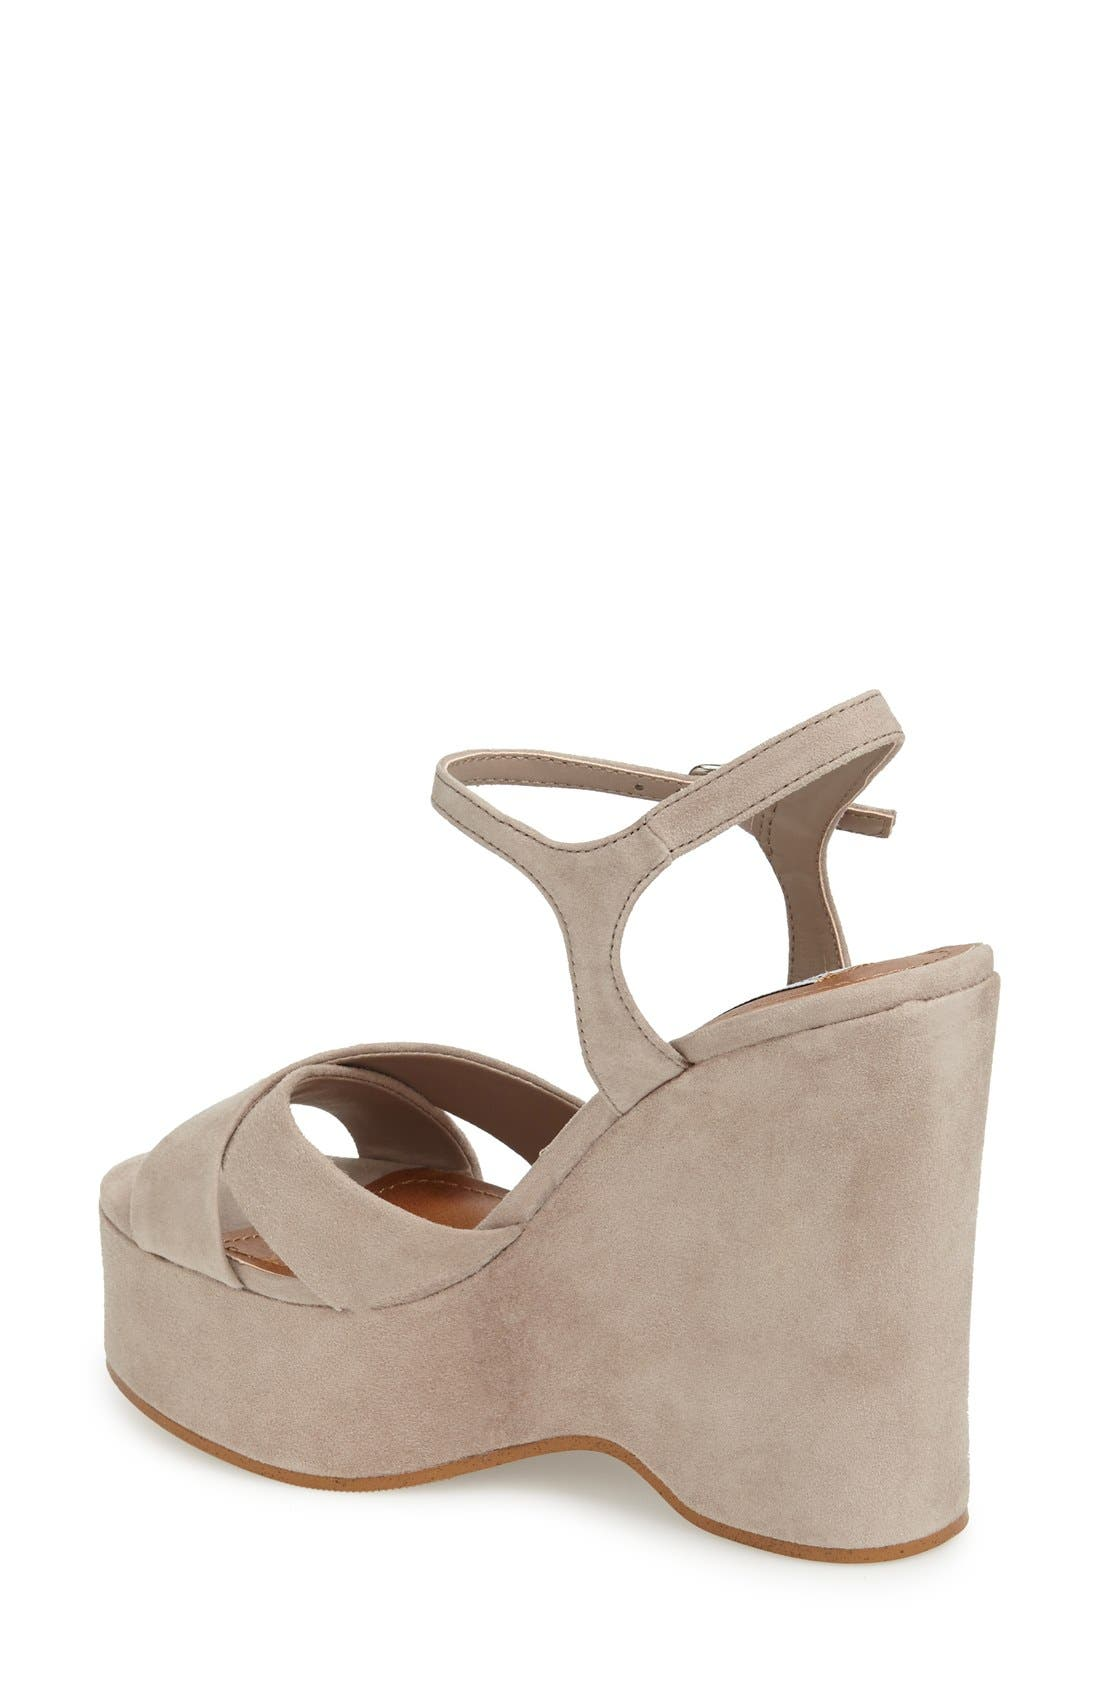 Alternate Image 2  - Steve Madden 'Casper' Platform Wedge Sandal (Women)